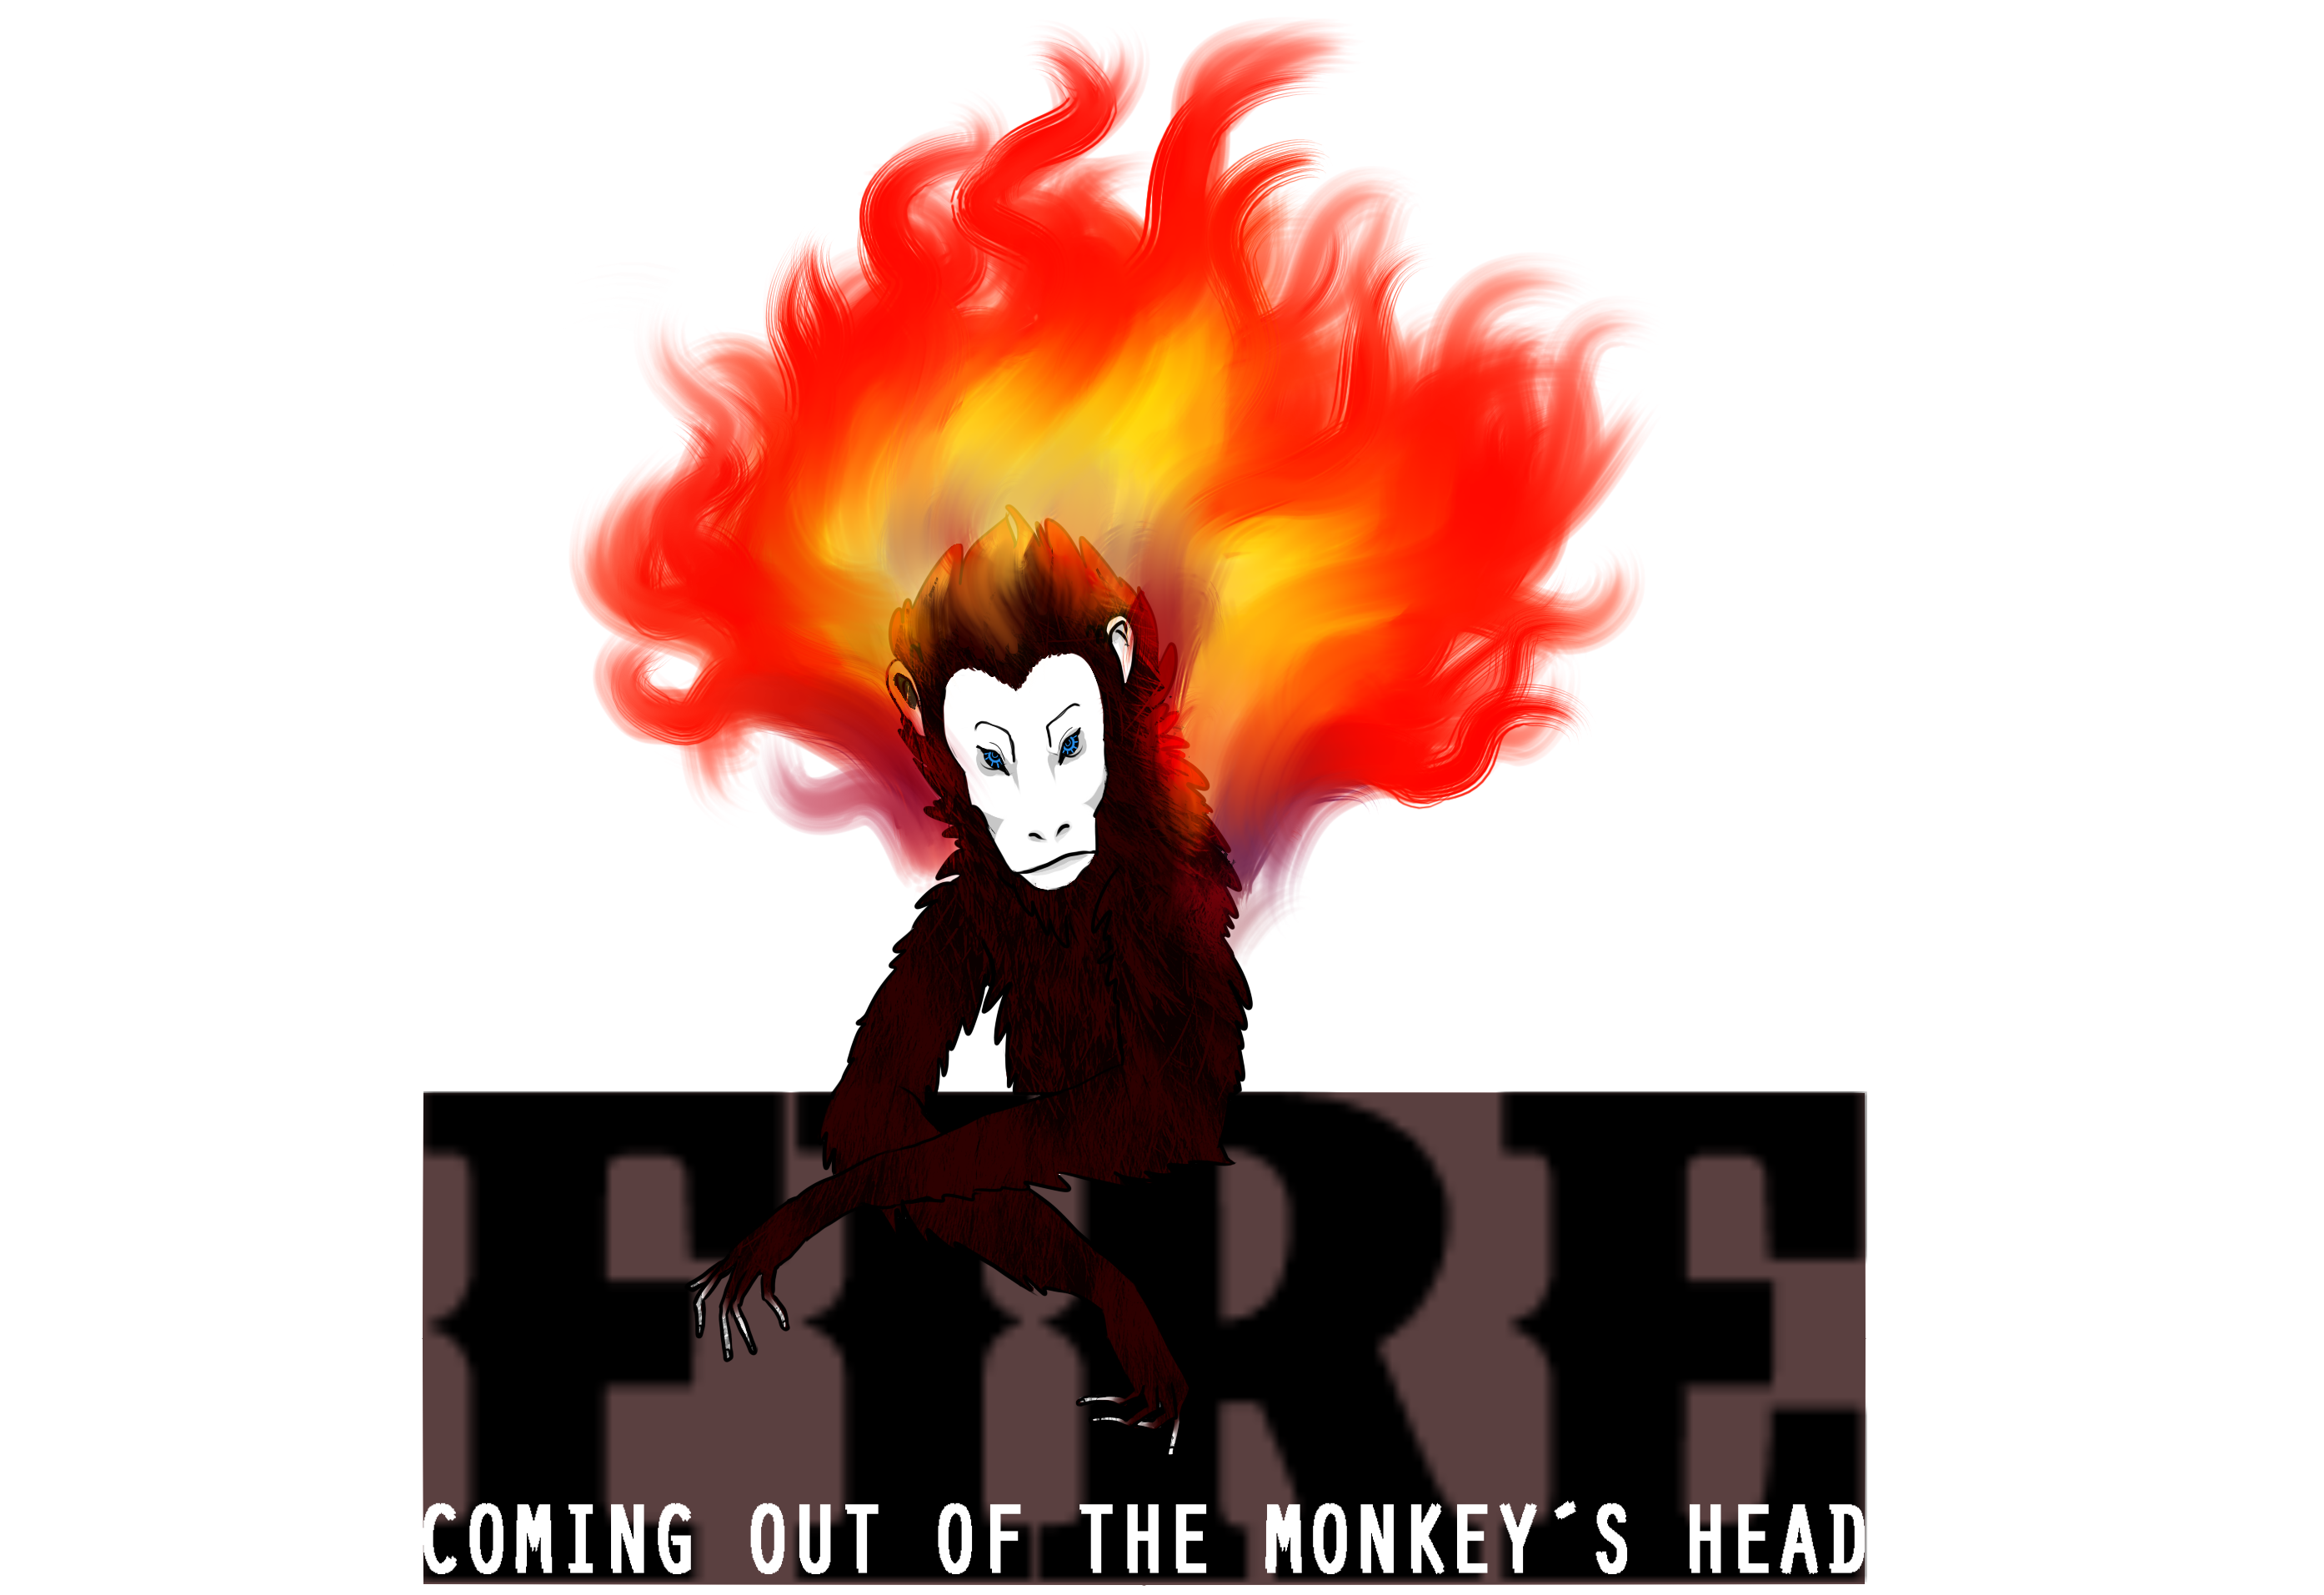 Fire coming out of the Monkey´s head